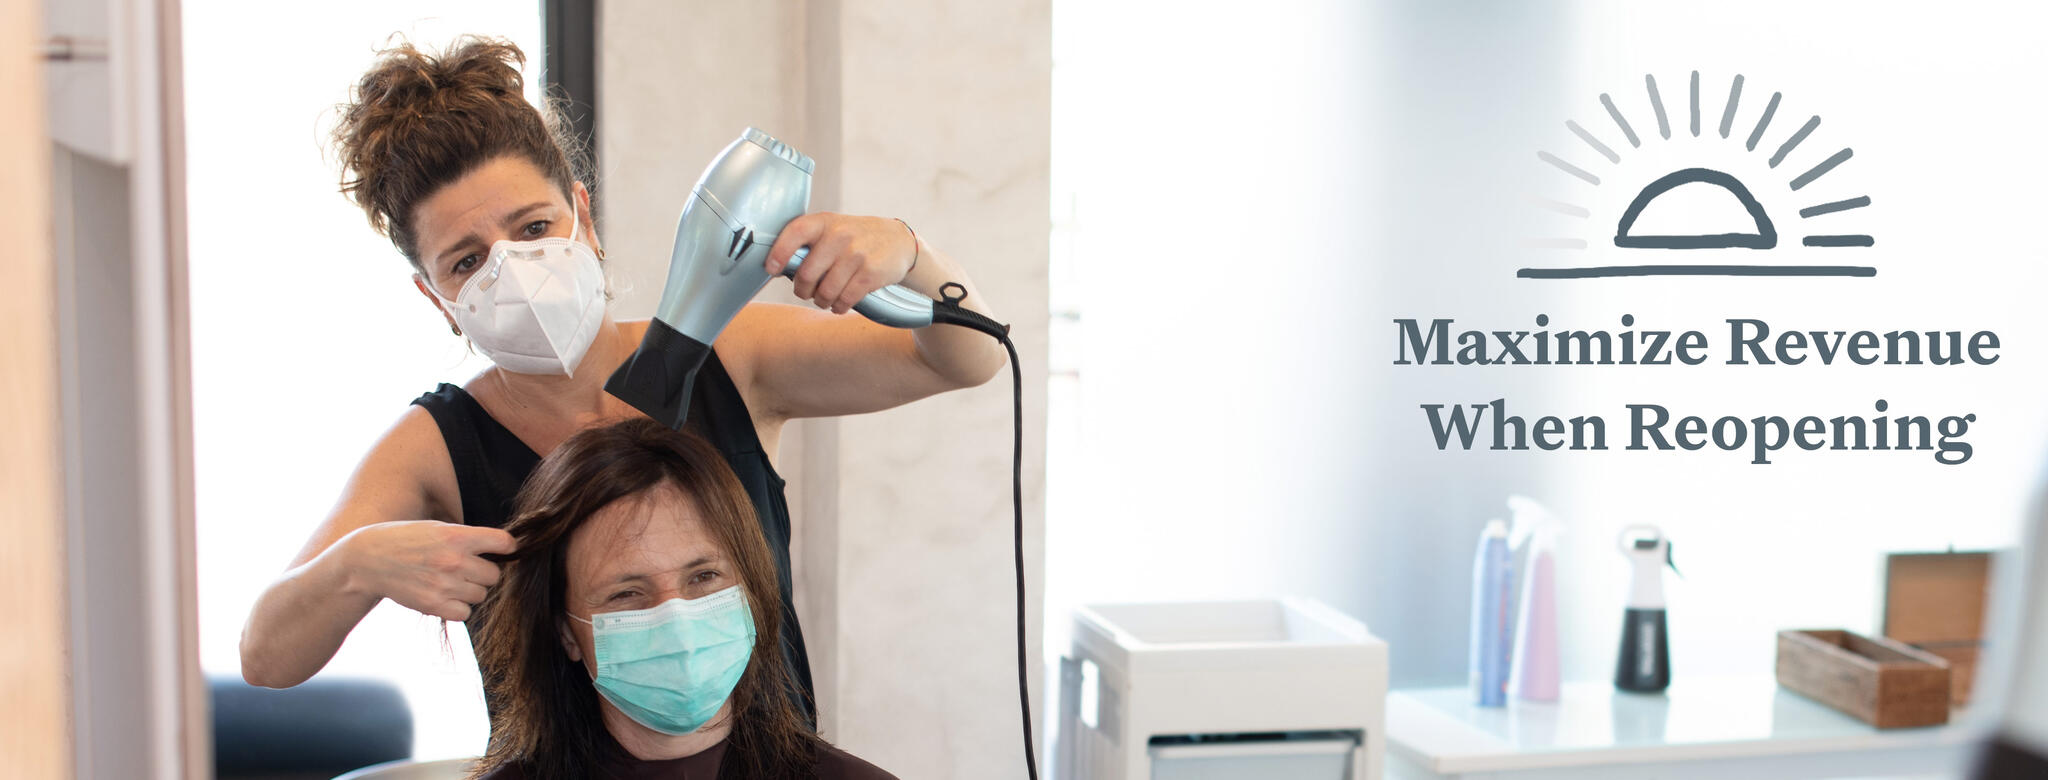 A hair stylist wears a mask while she blow dries a client's hair